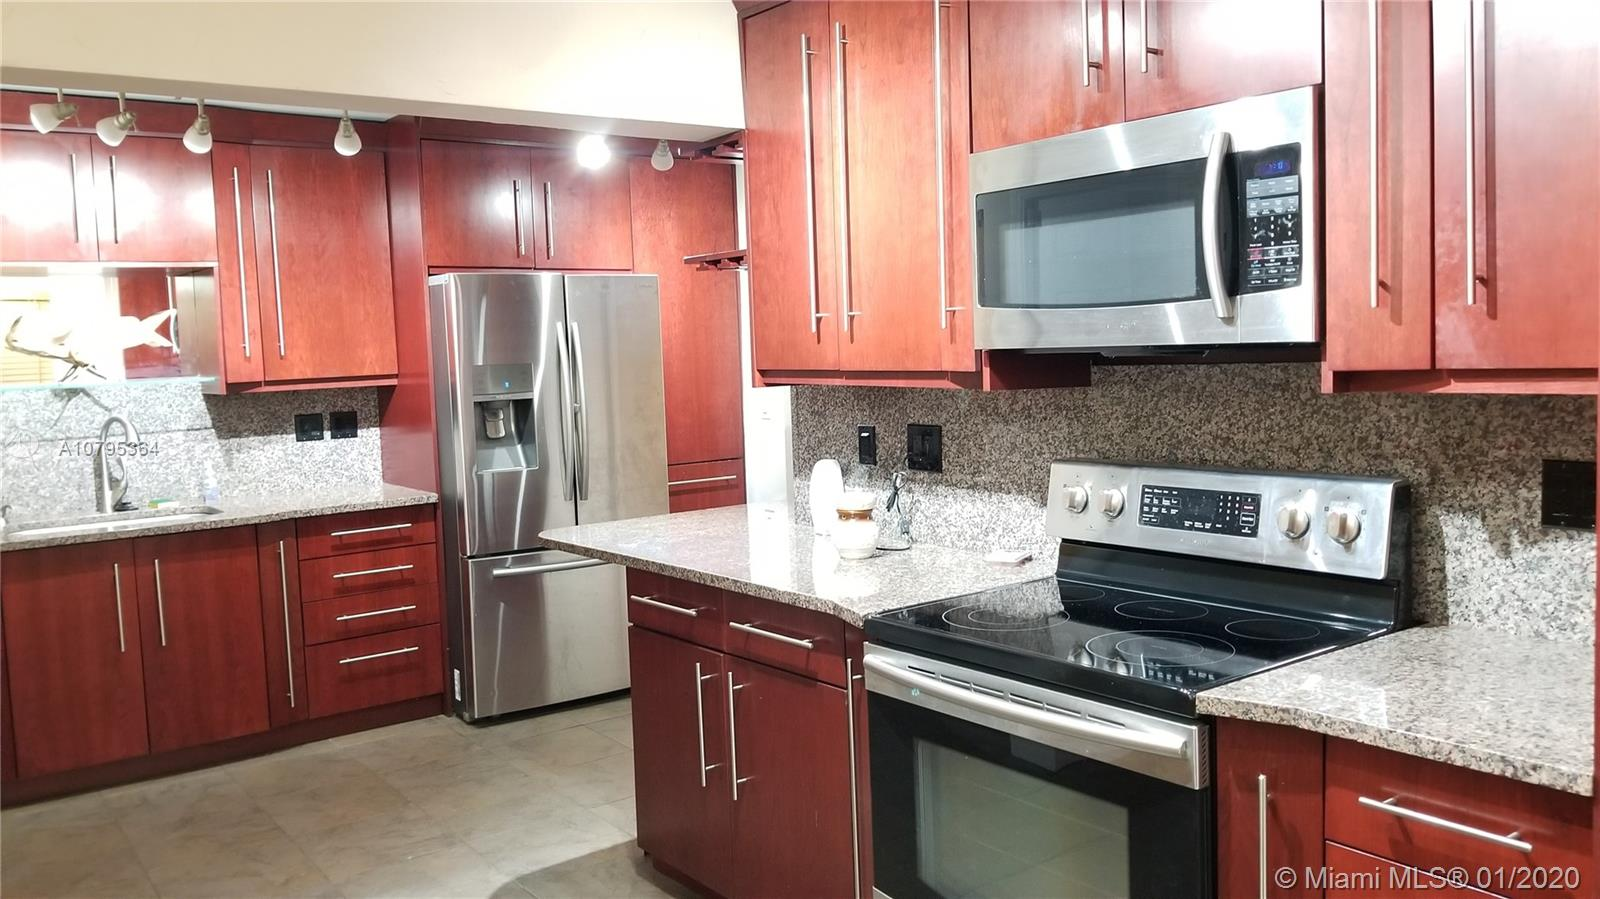 PRICE REDUCED!!! Beautifully remodeled 2 bed 1 bath with 1 car garage. Impact Windows and Doors. Tile throughout. Kitchen boasts real wood cabinets with TONS of storage space and under cabinet lighting. Granite counter tops. Matching granite back splash and windowsills. Stainless steel appliances. Refrigerator has two ice makers. Floor to ceiling tile in bathroom. Jacuzzi tub. All lighting in the house is LED. Brand new A/C unit. Upgraded electrical. The backyard is huge with plenty of room for a pool or a master suite. No HOA. No Restrictions. Bring your furniture! Bring your boat! Bring your pets! Owner Agent.